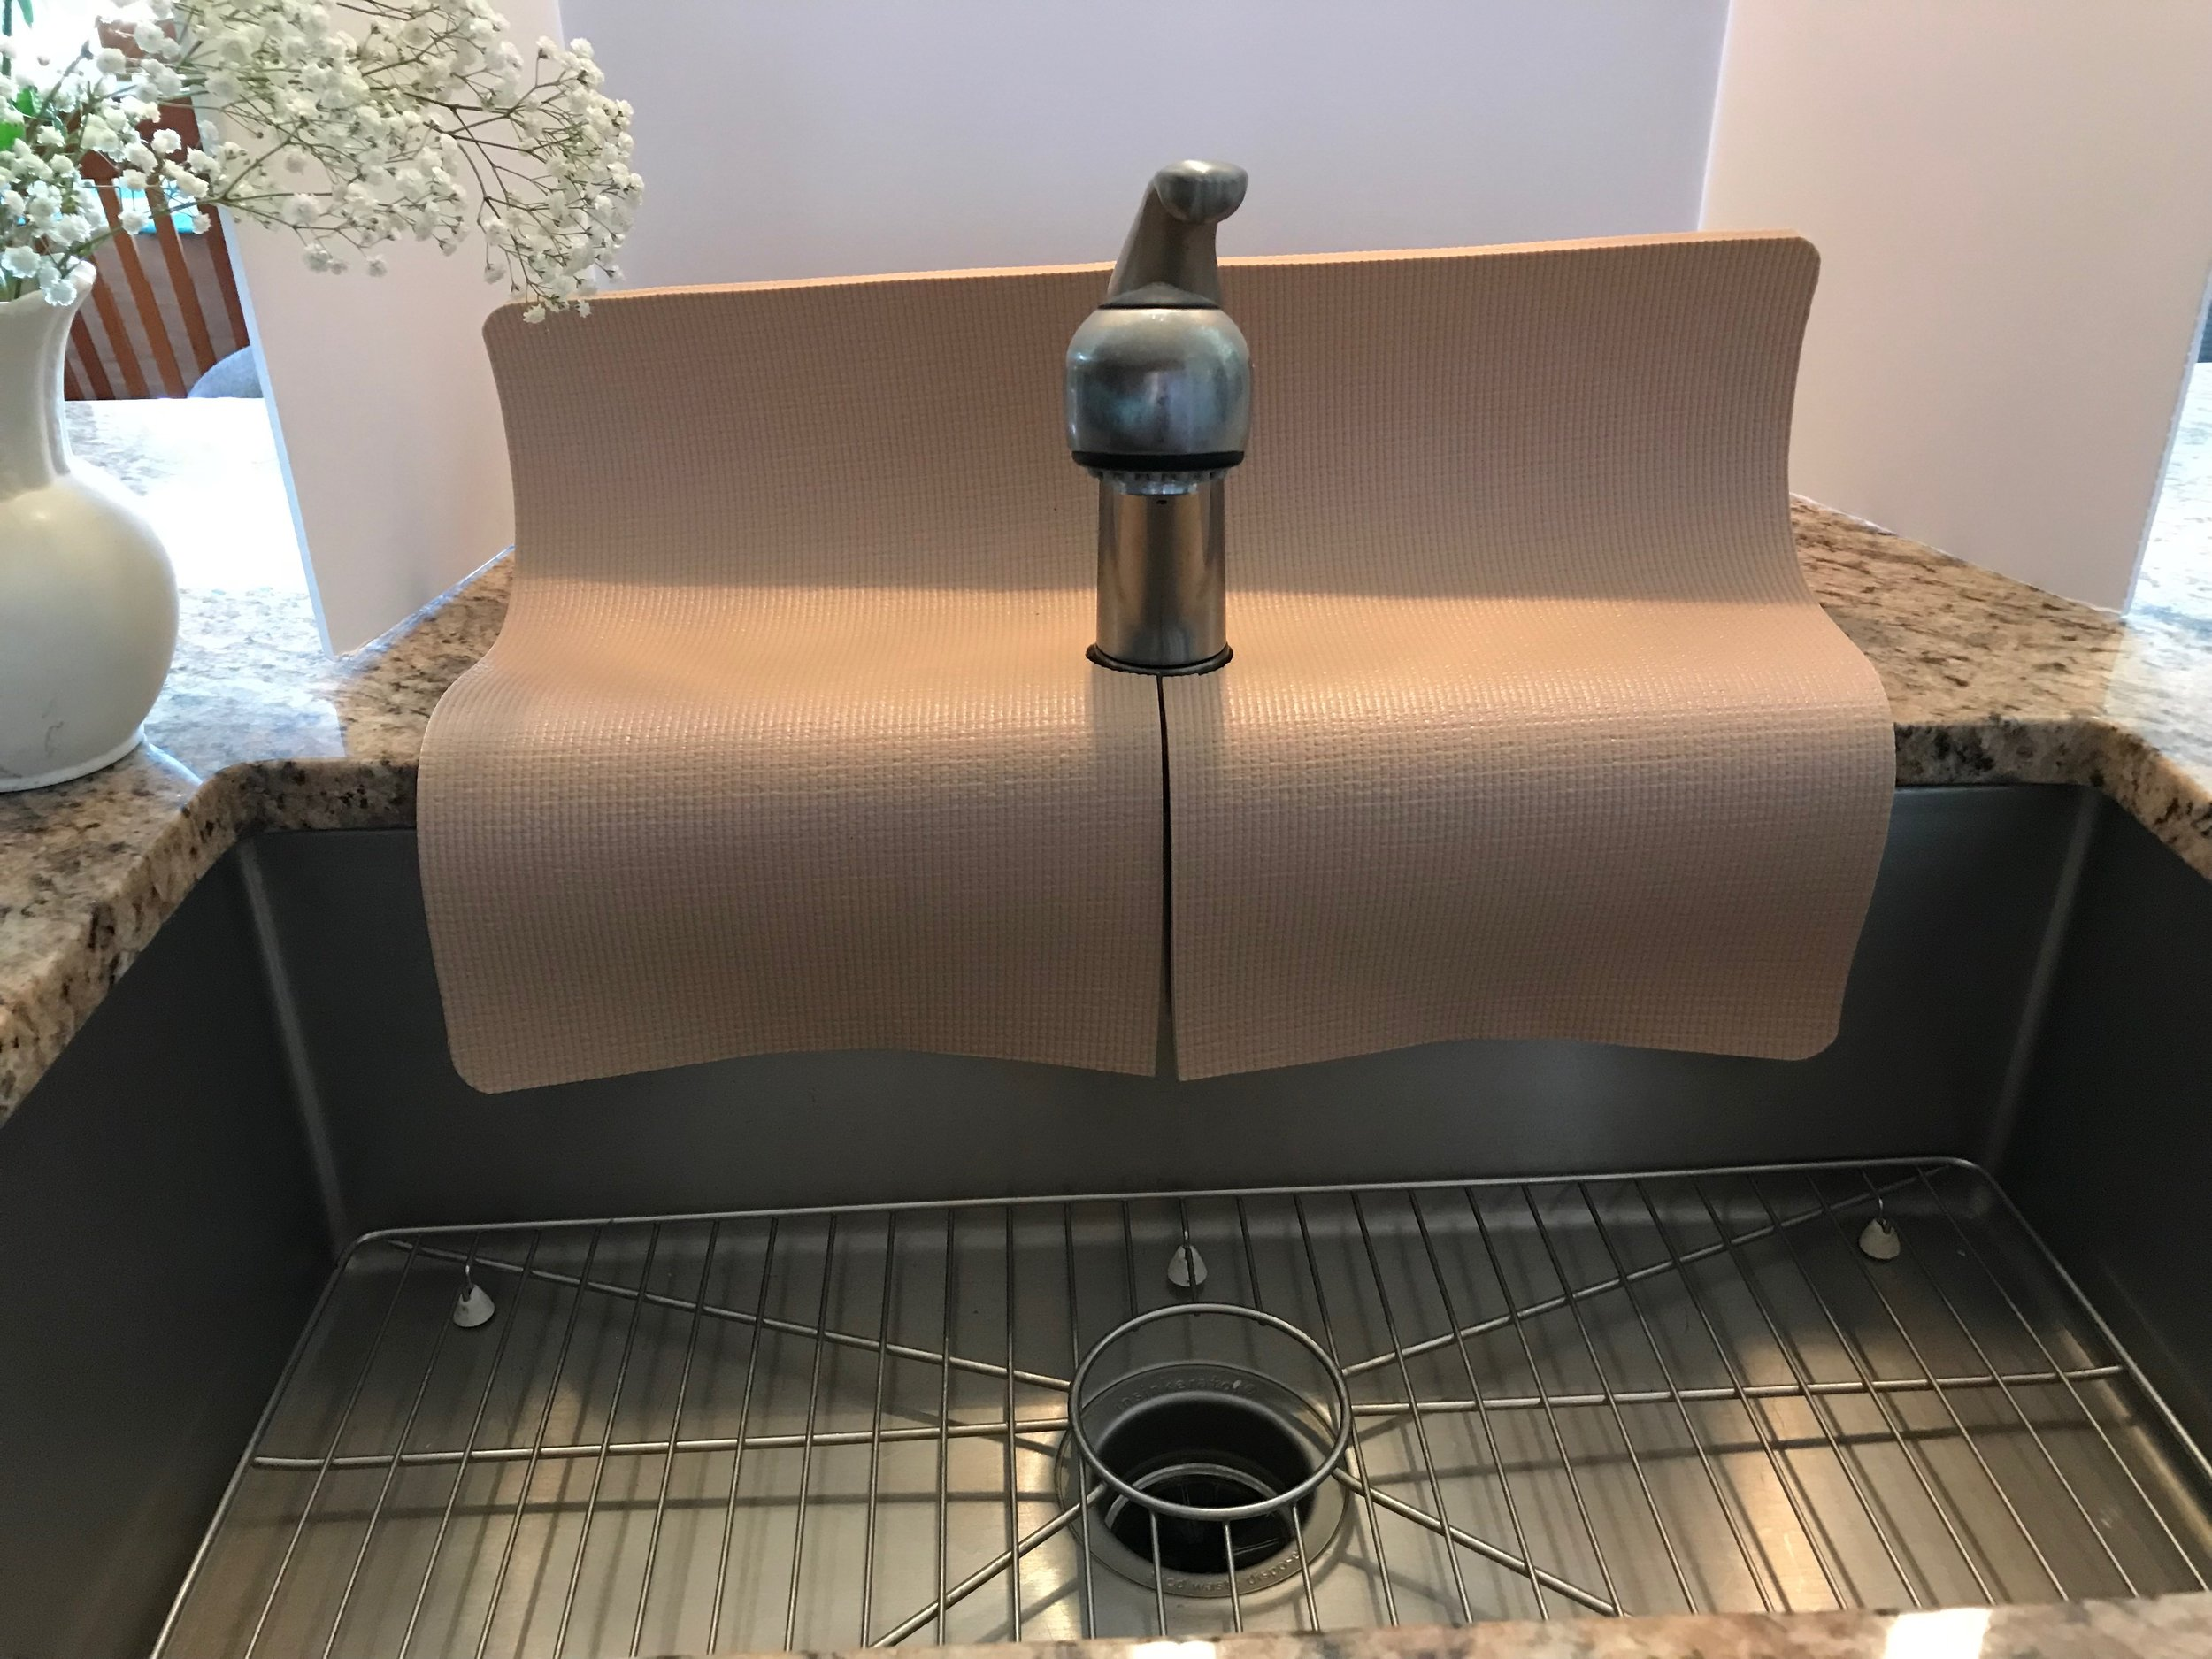 Beige Kitchen Sink Faucet Splash Guard, protect area from water damage and  water splashes, 17 in width x 23 in length, TM(4), copyright 2019, patent  ...